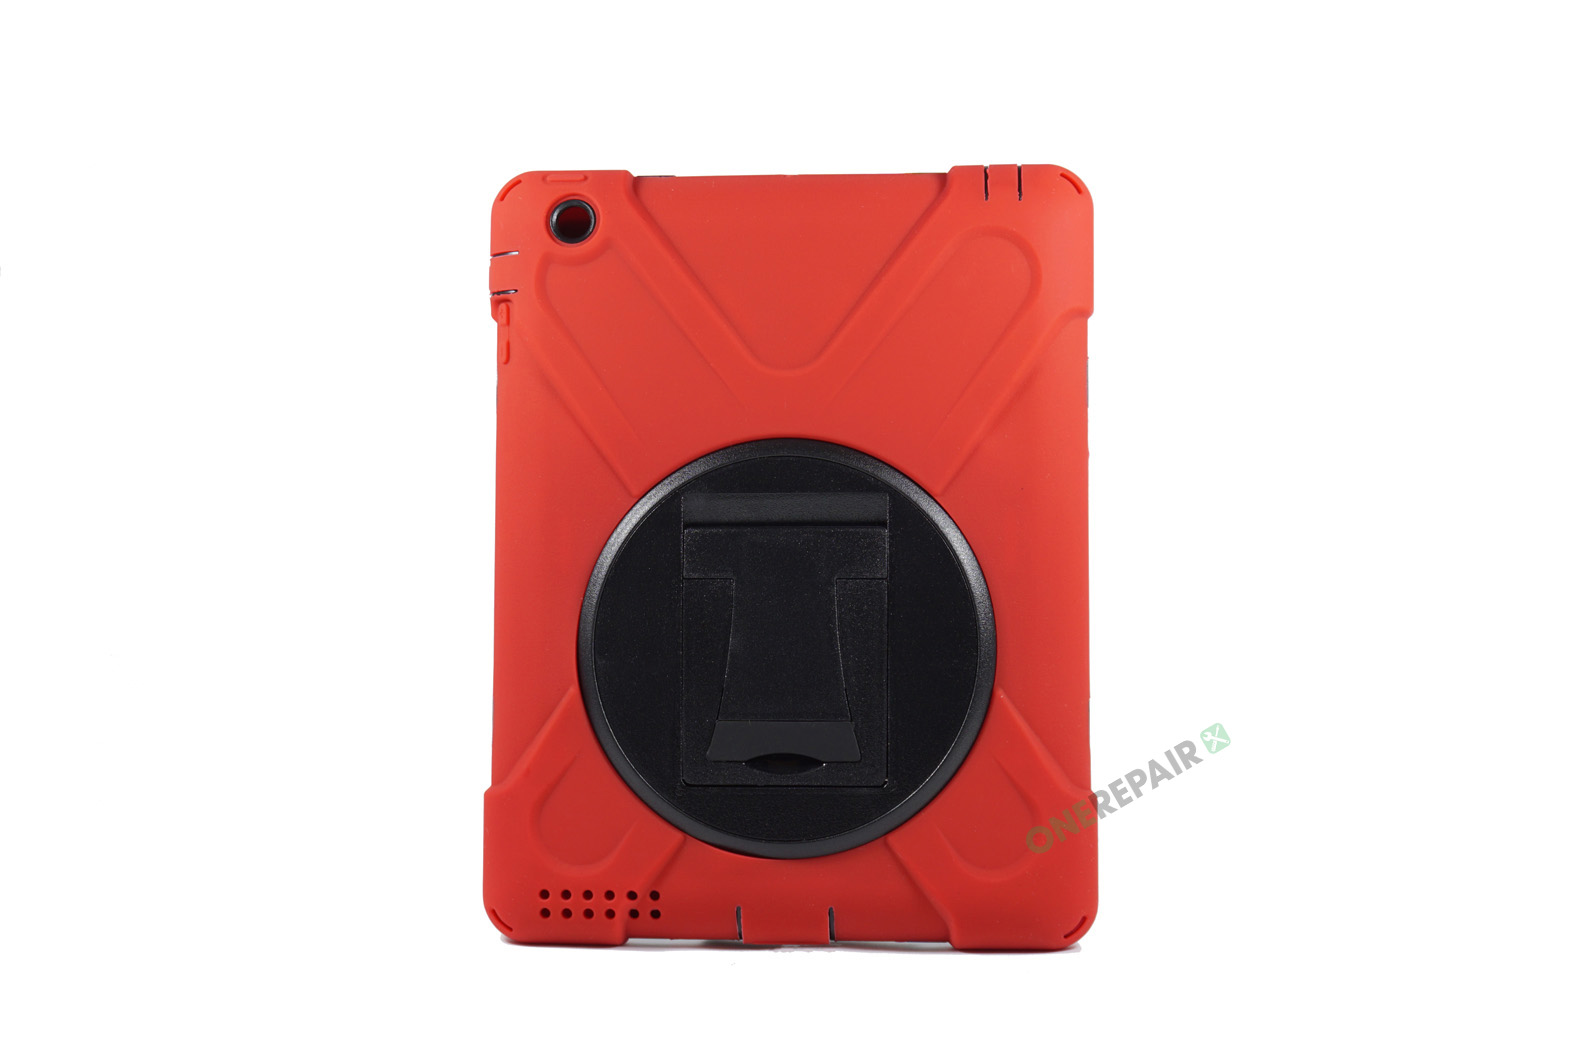 350984_iPad_2_3_4_A1395_A1396_A1430_A1403_1458_A1459_A1460_A1397_3-in-1_Bagcover_Cover_Børne_Skole_Hardcase_Roed_Billig_Godt_Beskyttelse_OneRepair_WM_00001